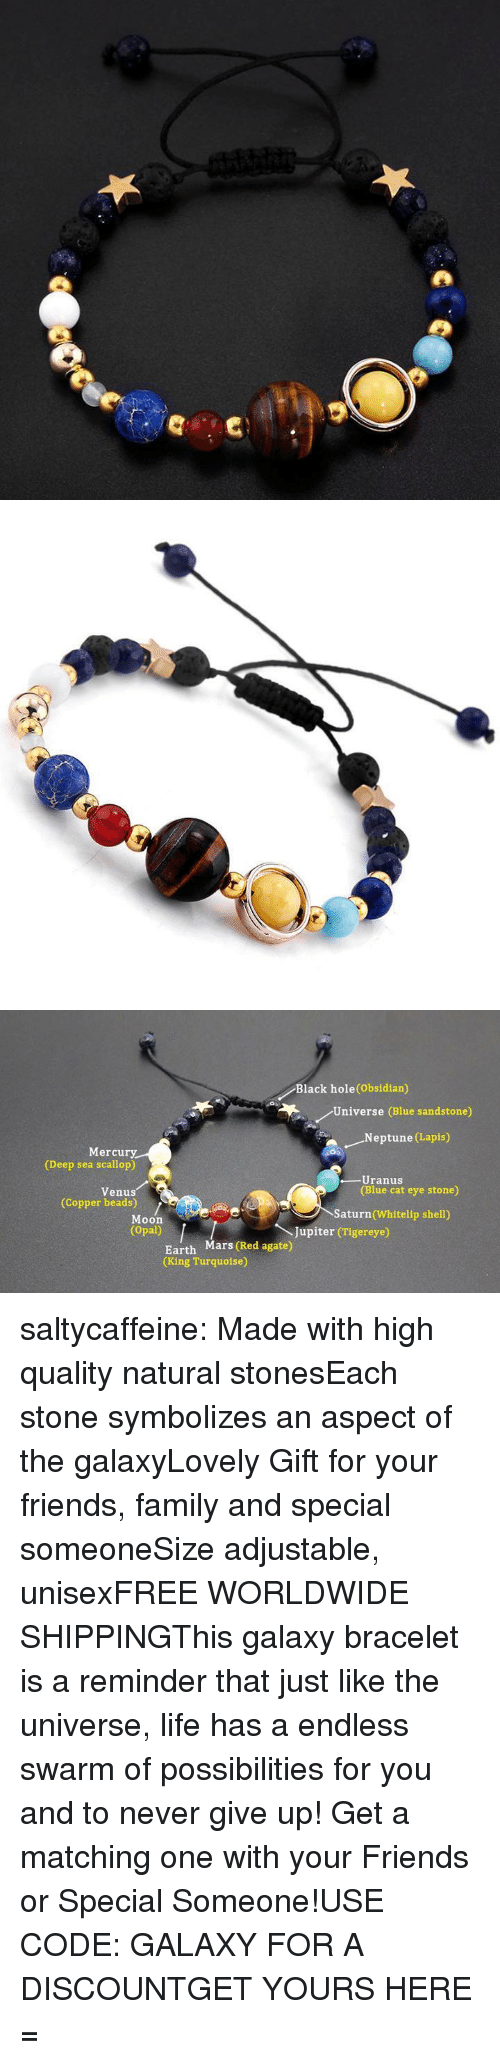 Family, Friends, and Life: Black hole(Obsidian)  Universe (Blue sandstone)  .Neptune (Lapis)  Mercury  (Deep sea scallop)  -Uranus  (Blue cat eye stone)  Venus  (Copper beads)  Saturn (Whitelip shell)  Moon  (Opal)  Jupiter (Tigereye)  Earth Mars (Red agate)  (King Turquoise) saltycaffeine:  Made with high quality natural stonesEach stone symbolizes an aspect of the galaxyLovely Gift for your friends, family and special someoneSize adjustable, unisexFREE WORLDWIDE SHIPPINGThis galaxy bracelet is a reminder that just like the universe, life has a endless swarm of possibilities for you and to never give up!Get a matching one with your Friends or Special Someone!USE CODE: GALAXY FOR A DISCOUNTGET YOURS HERE =